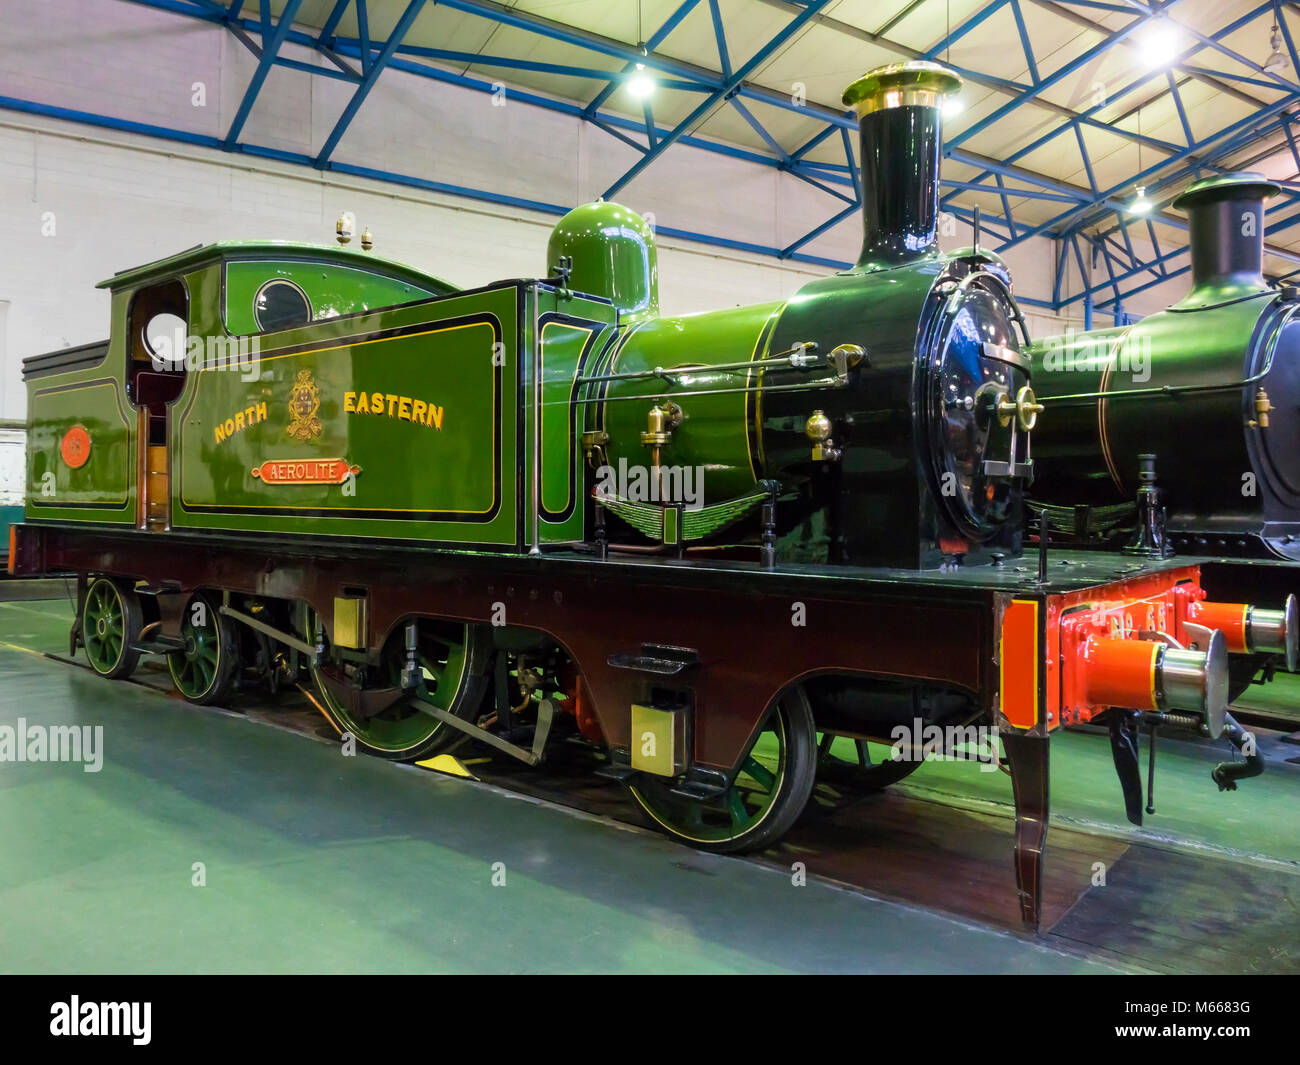 Great Hall at the National Railway Museum York with North Eastern Railway Tank steam locomotive engine Number 66 - Stock Image